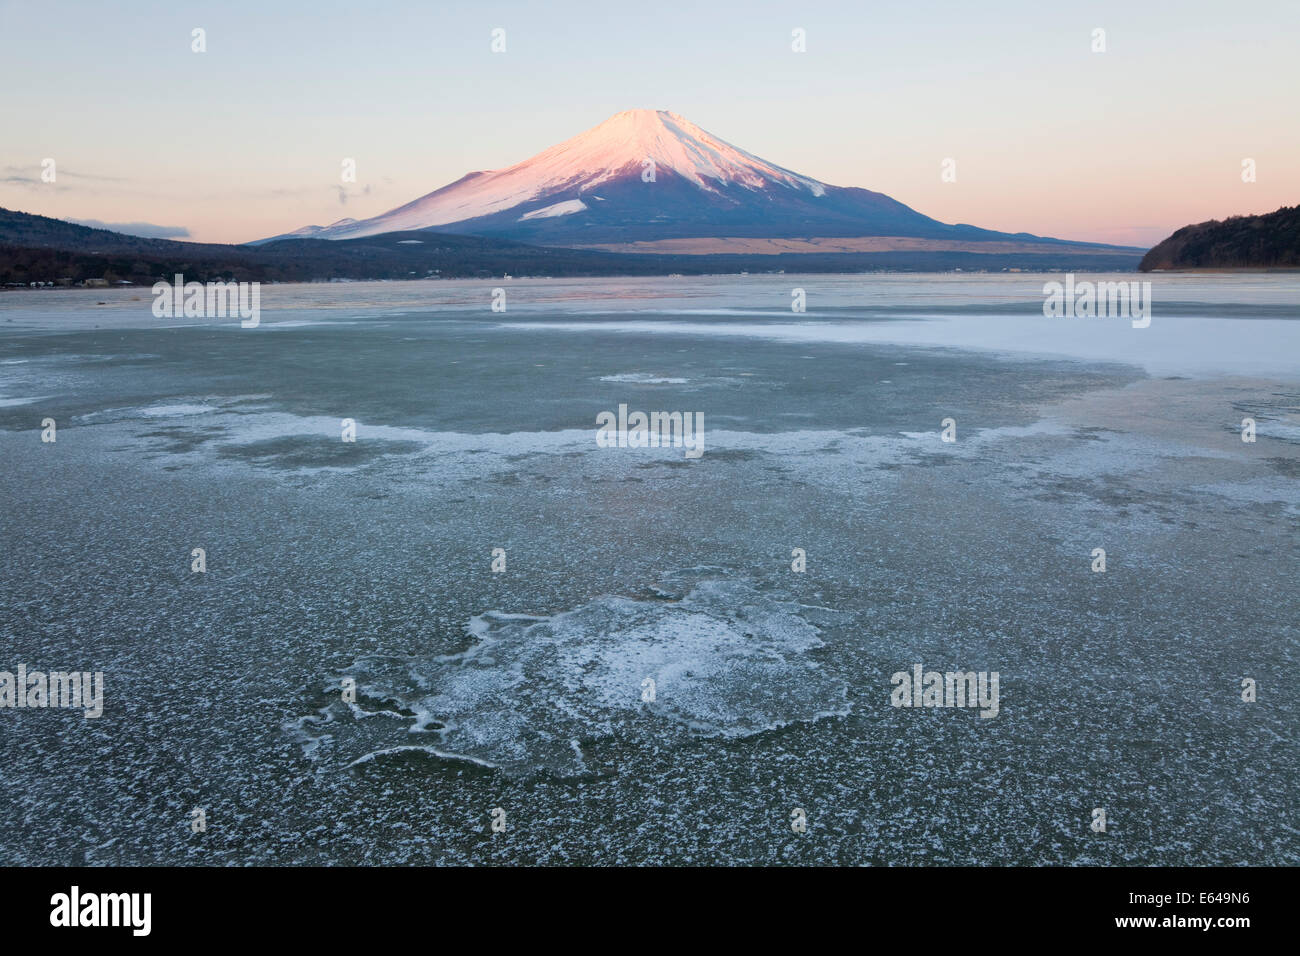 Ice on Lake Yamanaka with snowcovered Mount Fuji in background, Japan - Stock Image